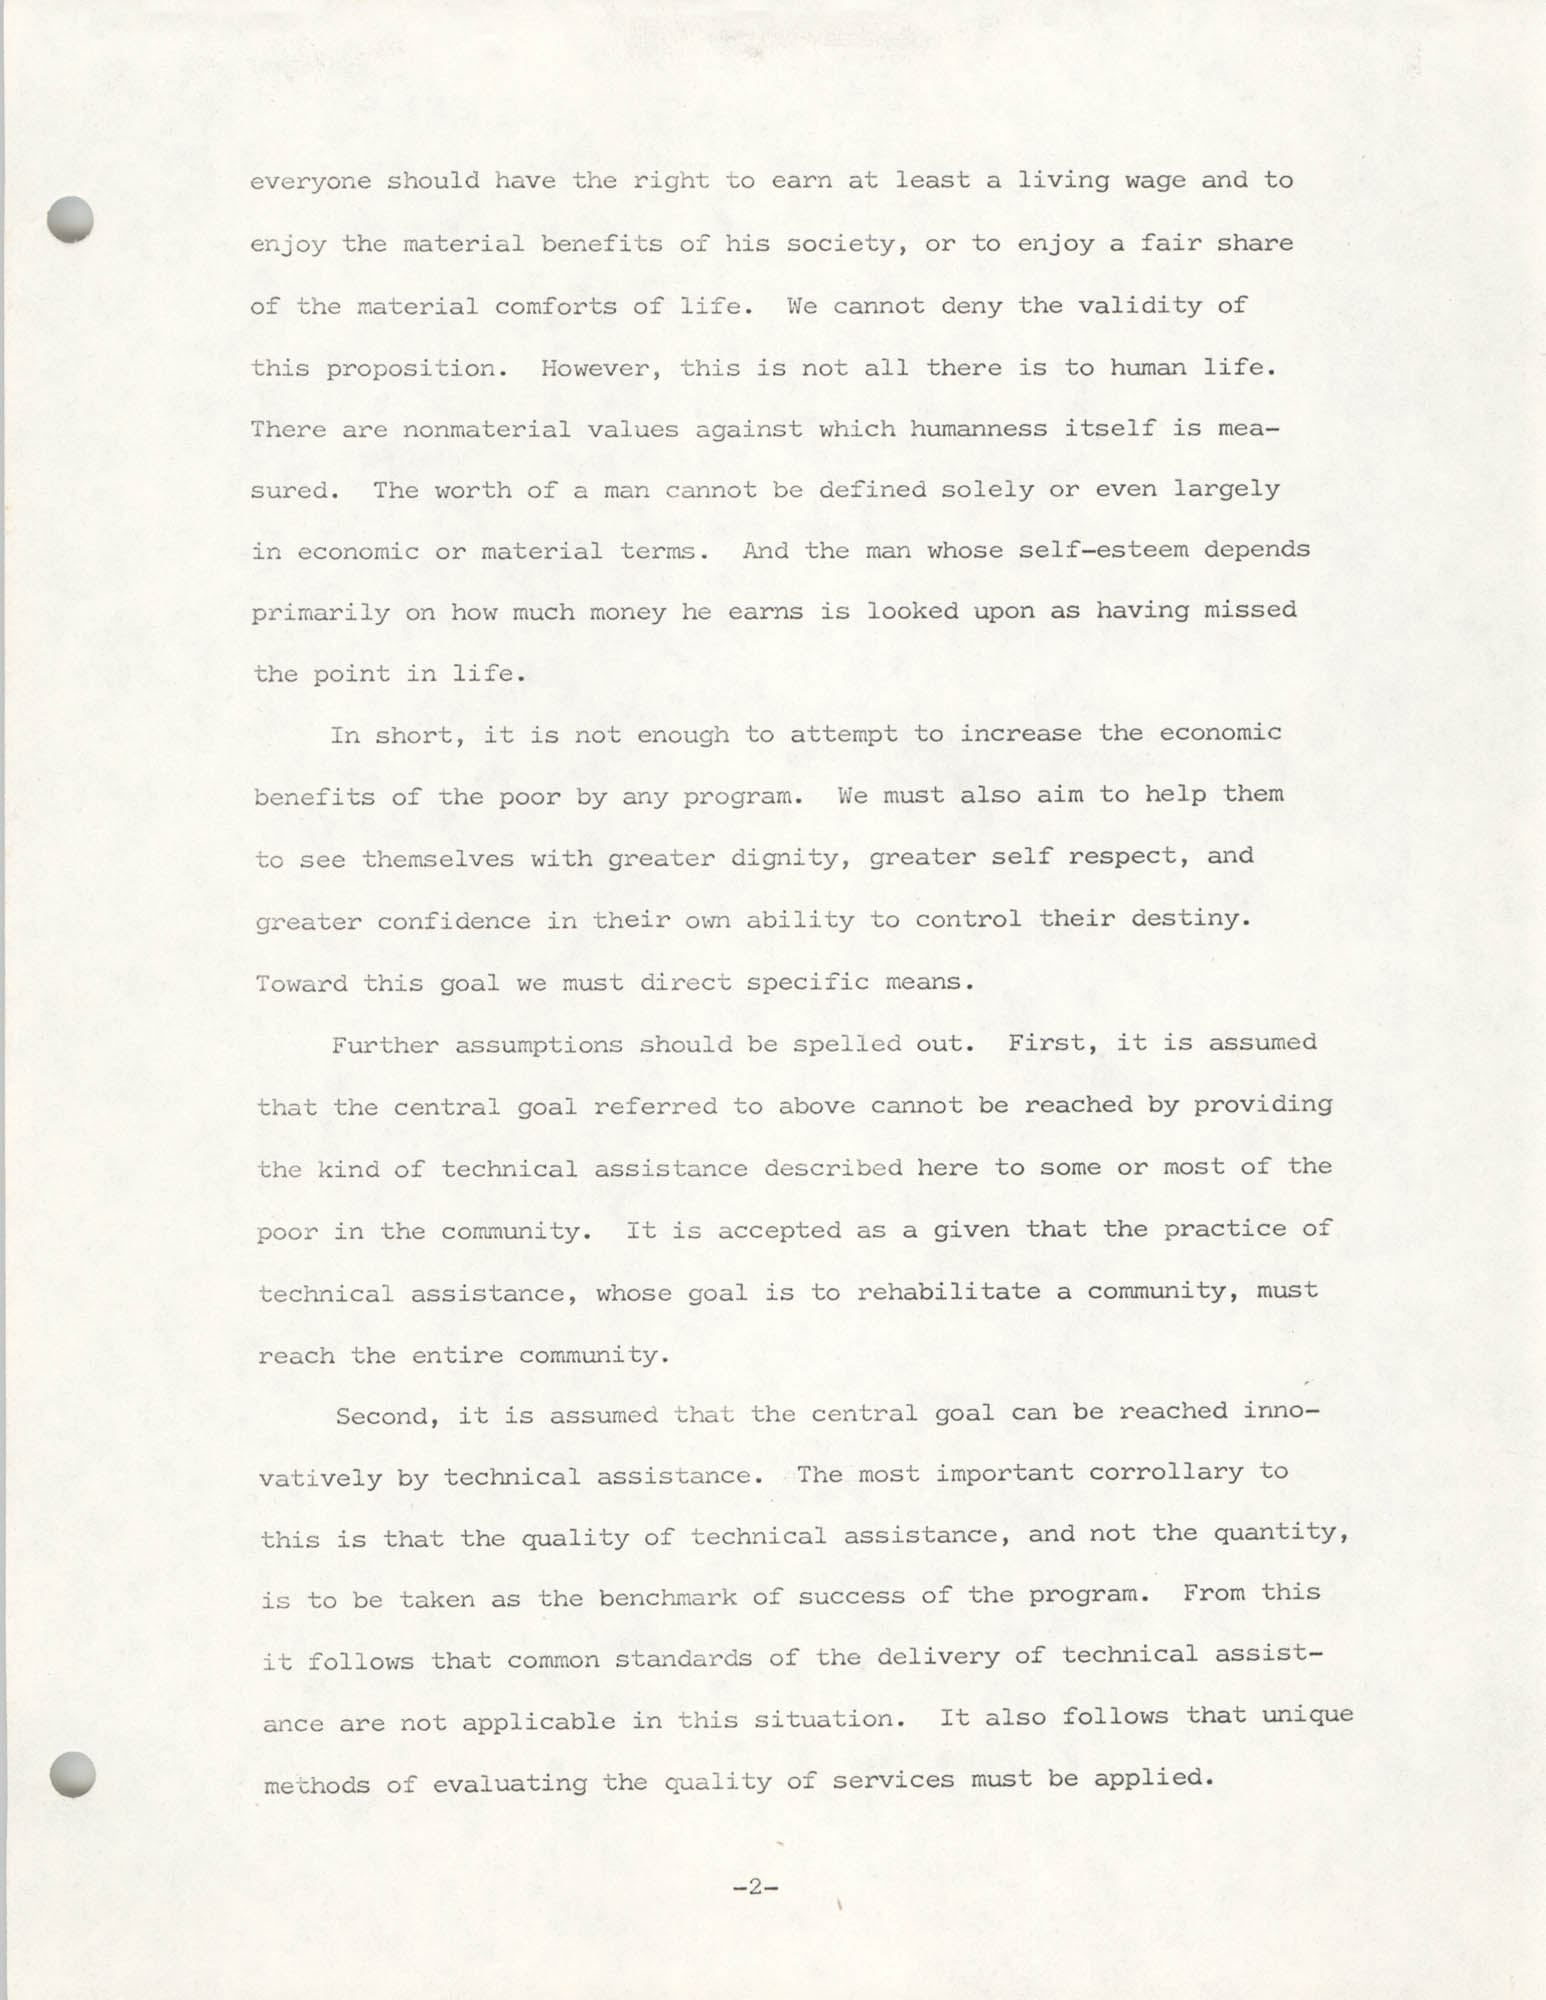 COBRA Philosophy of Technical Assistance, Page 2